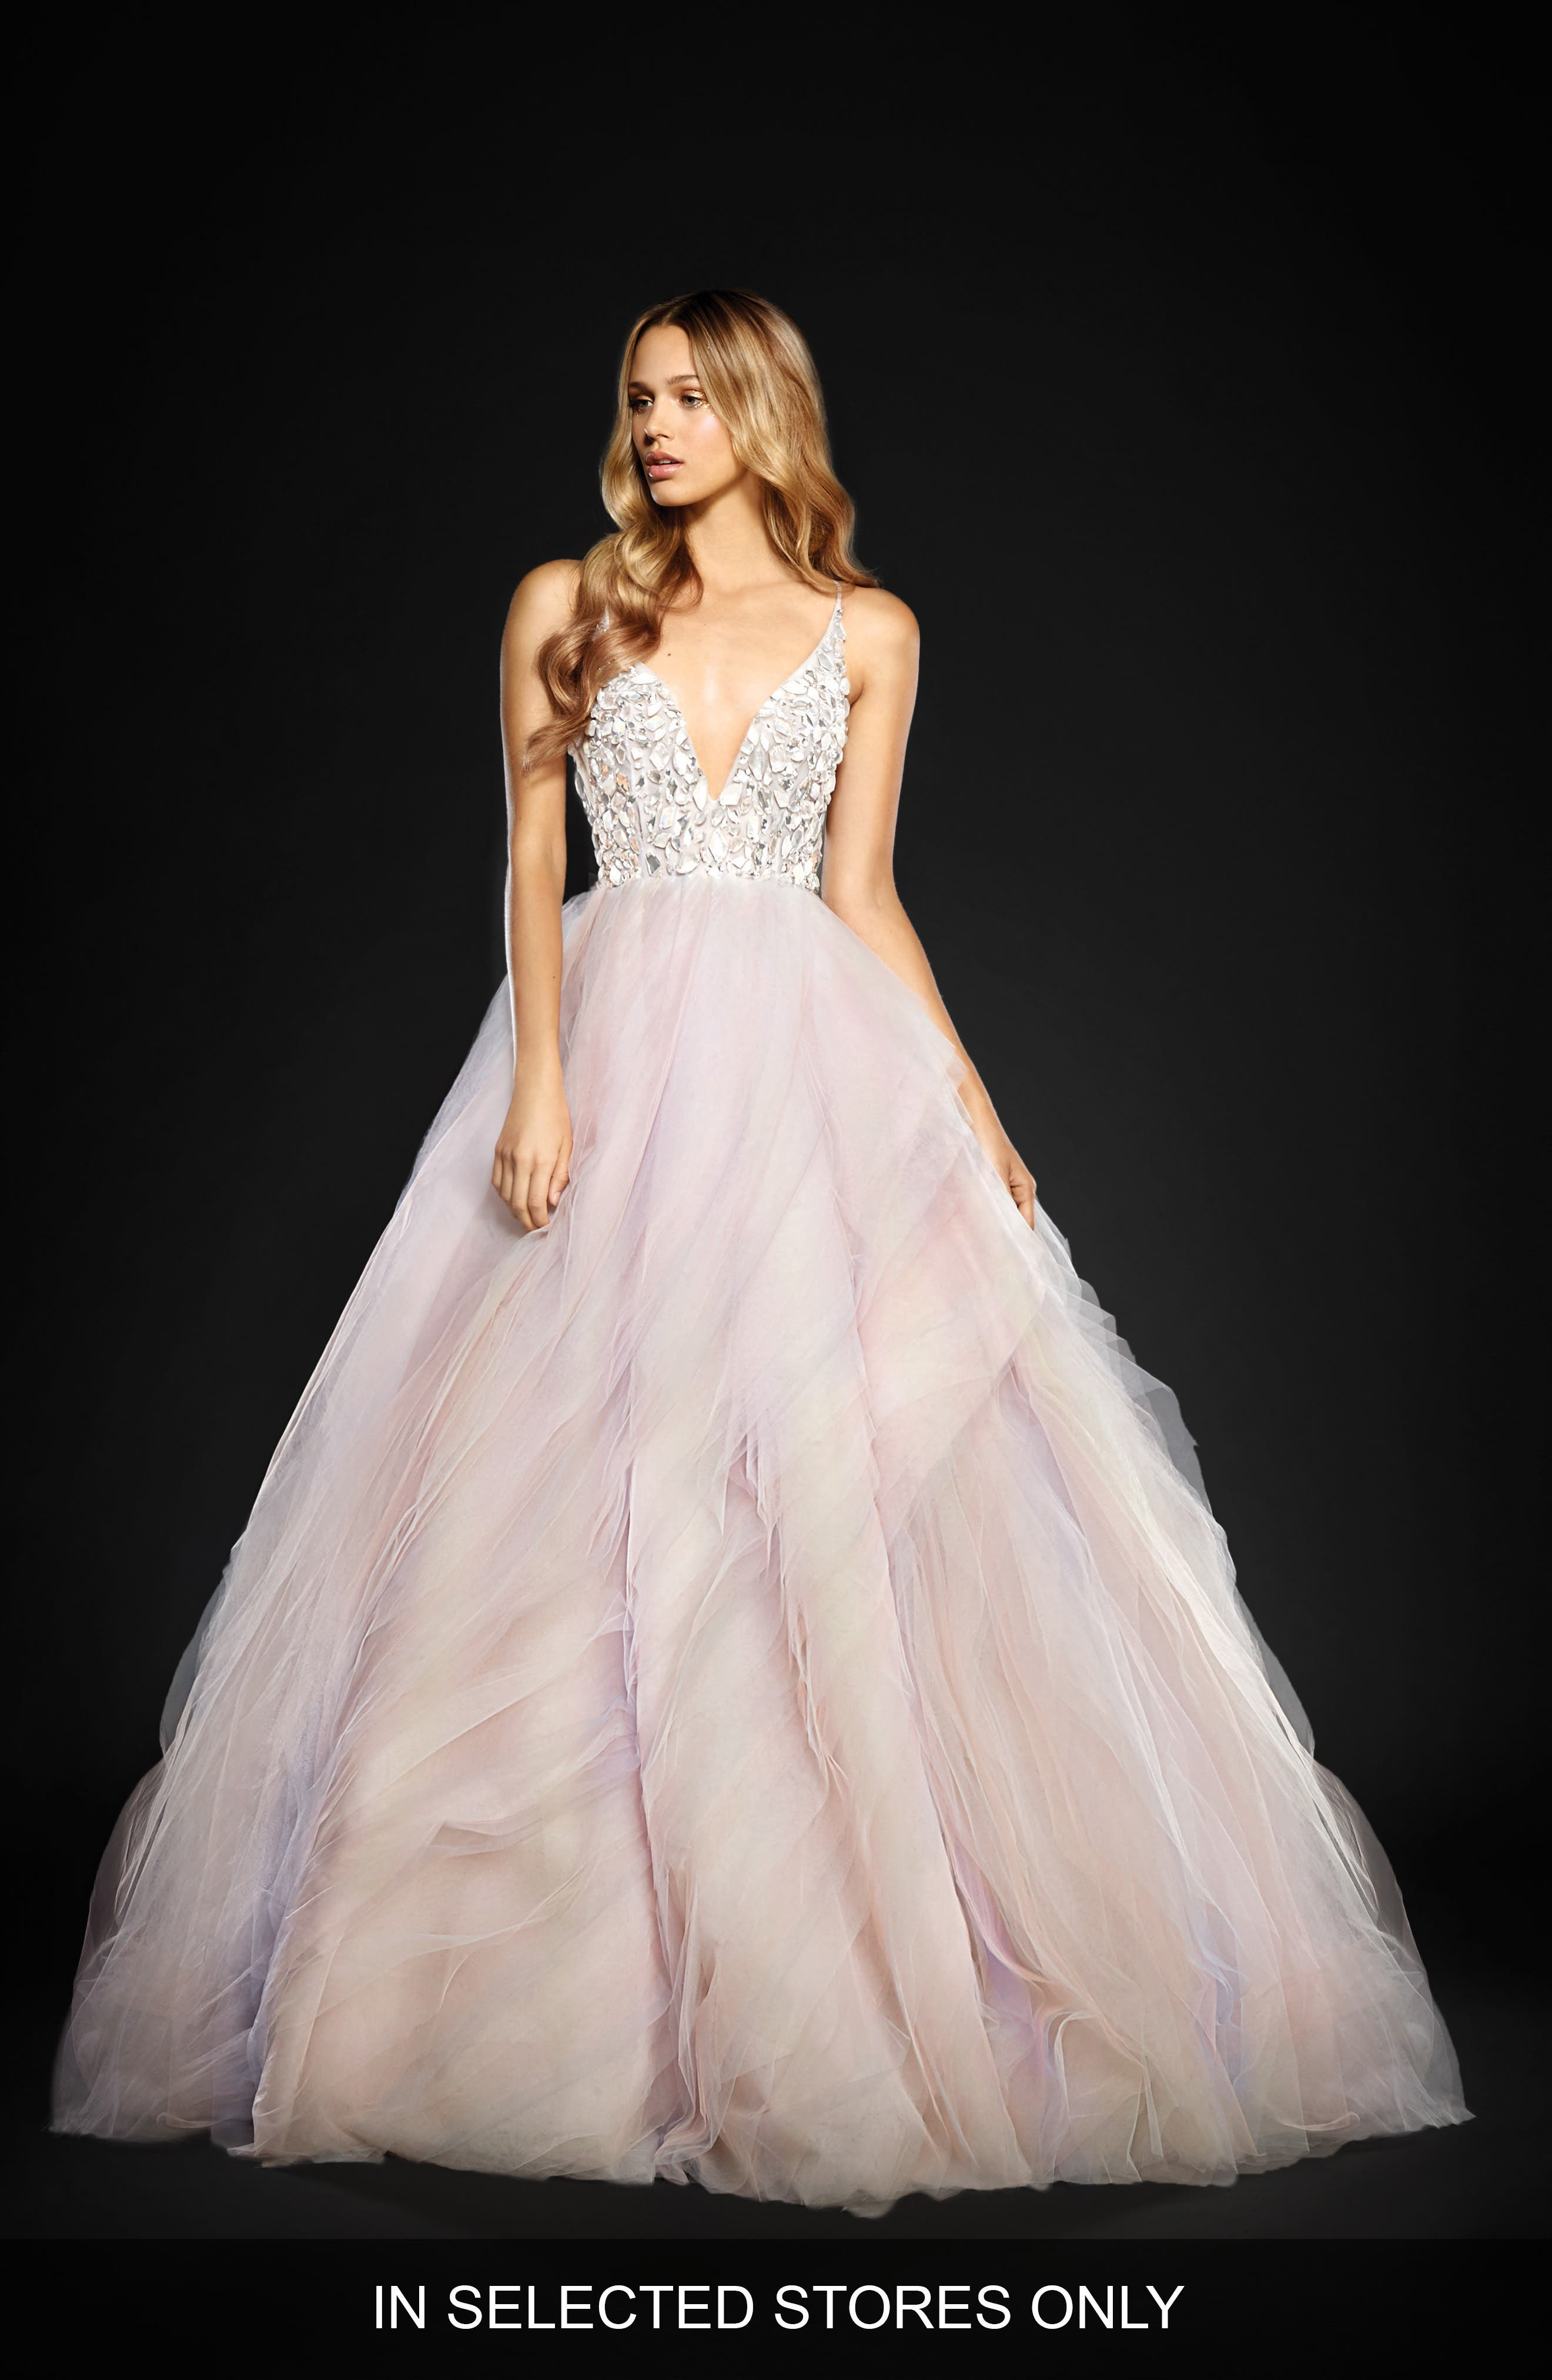 Hayley Paige Jem Rock Candy Embellished Tulle Ballgown (In Selected Stores Only)